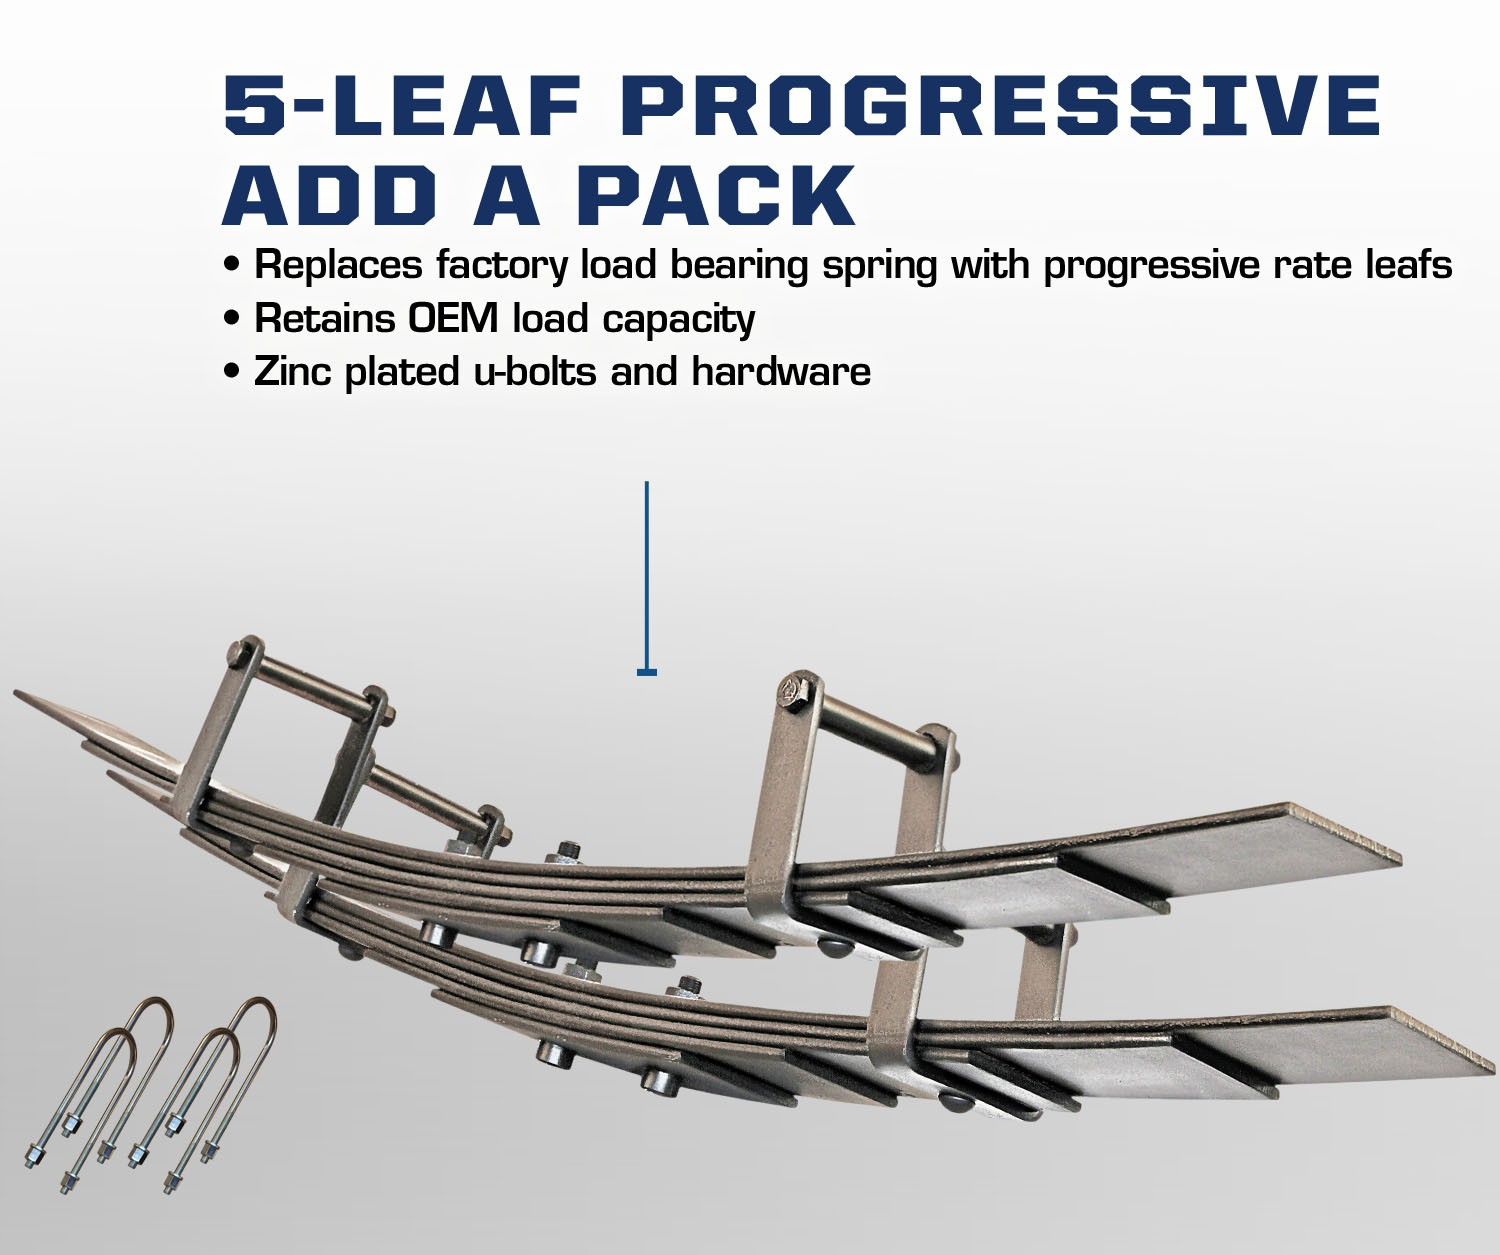 Carli Dodge Ram 5 Leaf Add-A-Pack